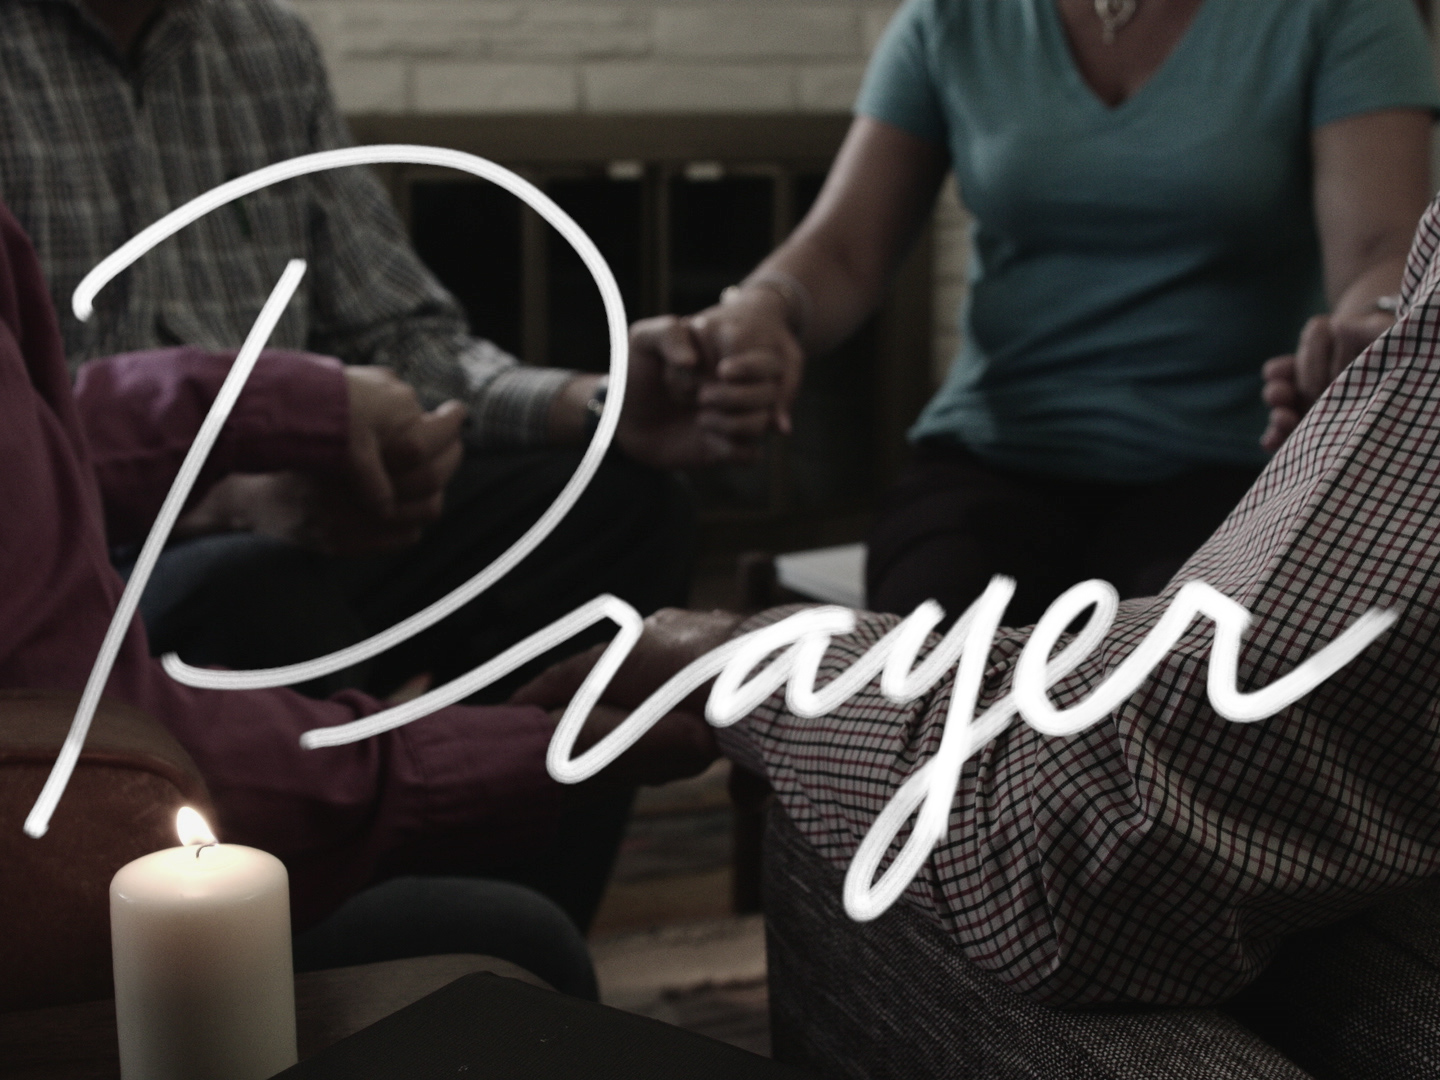 Power of Prayer - Every Saturday night from 5:00 - 6:00 p.m. we have a prayer service. Praying for God's presence in our church, praying for needs within our church family and for the Gospel to go forth to the entire world.